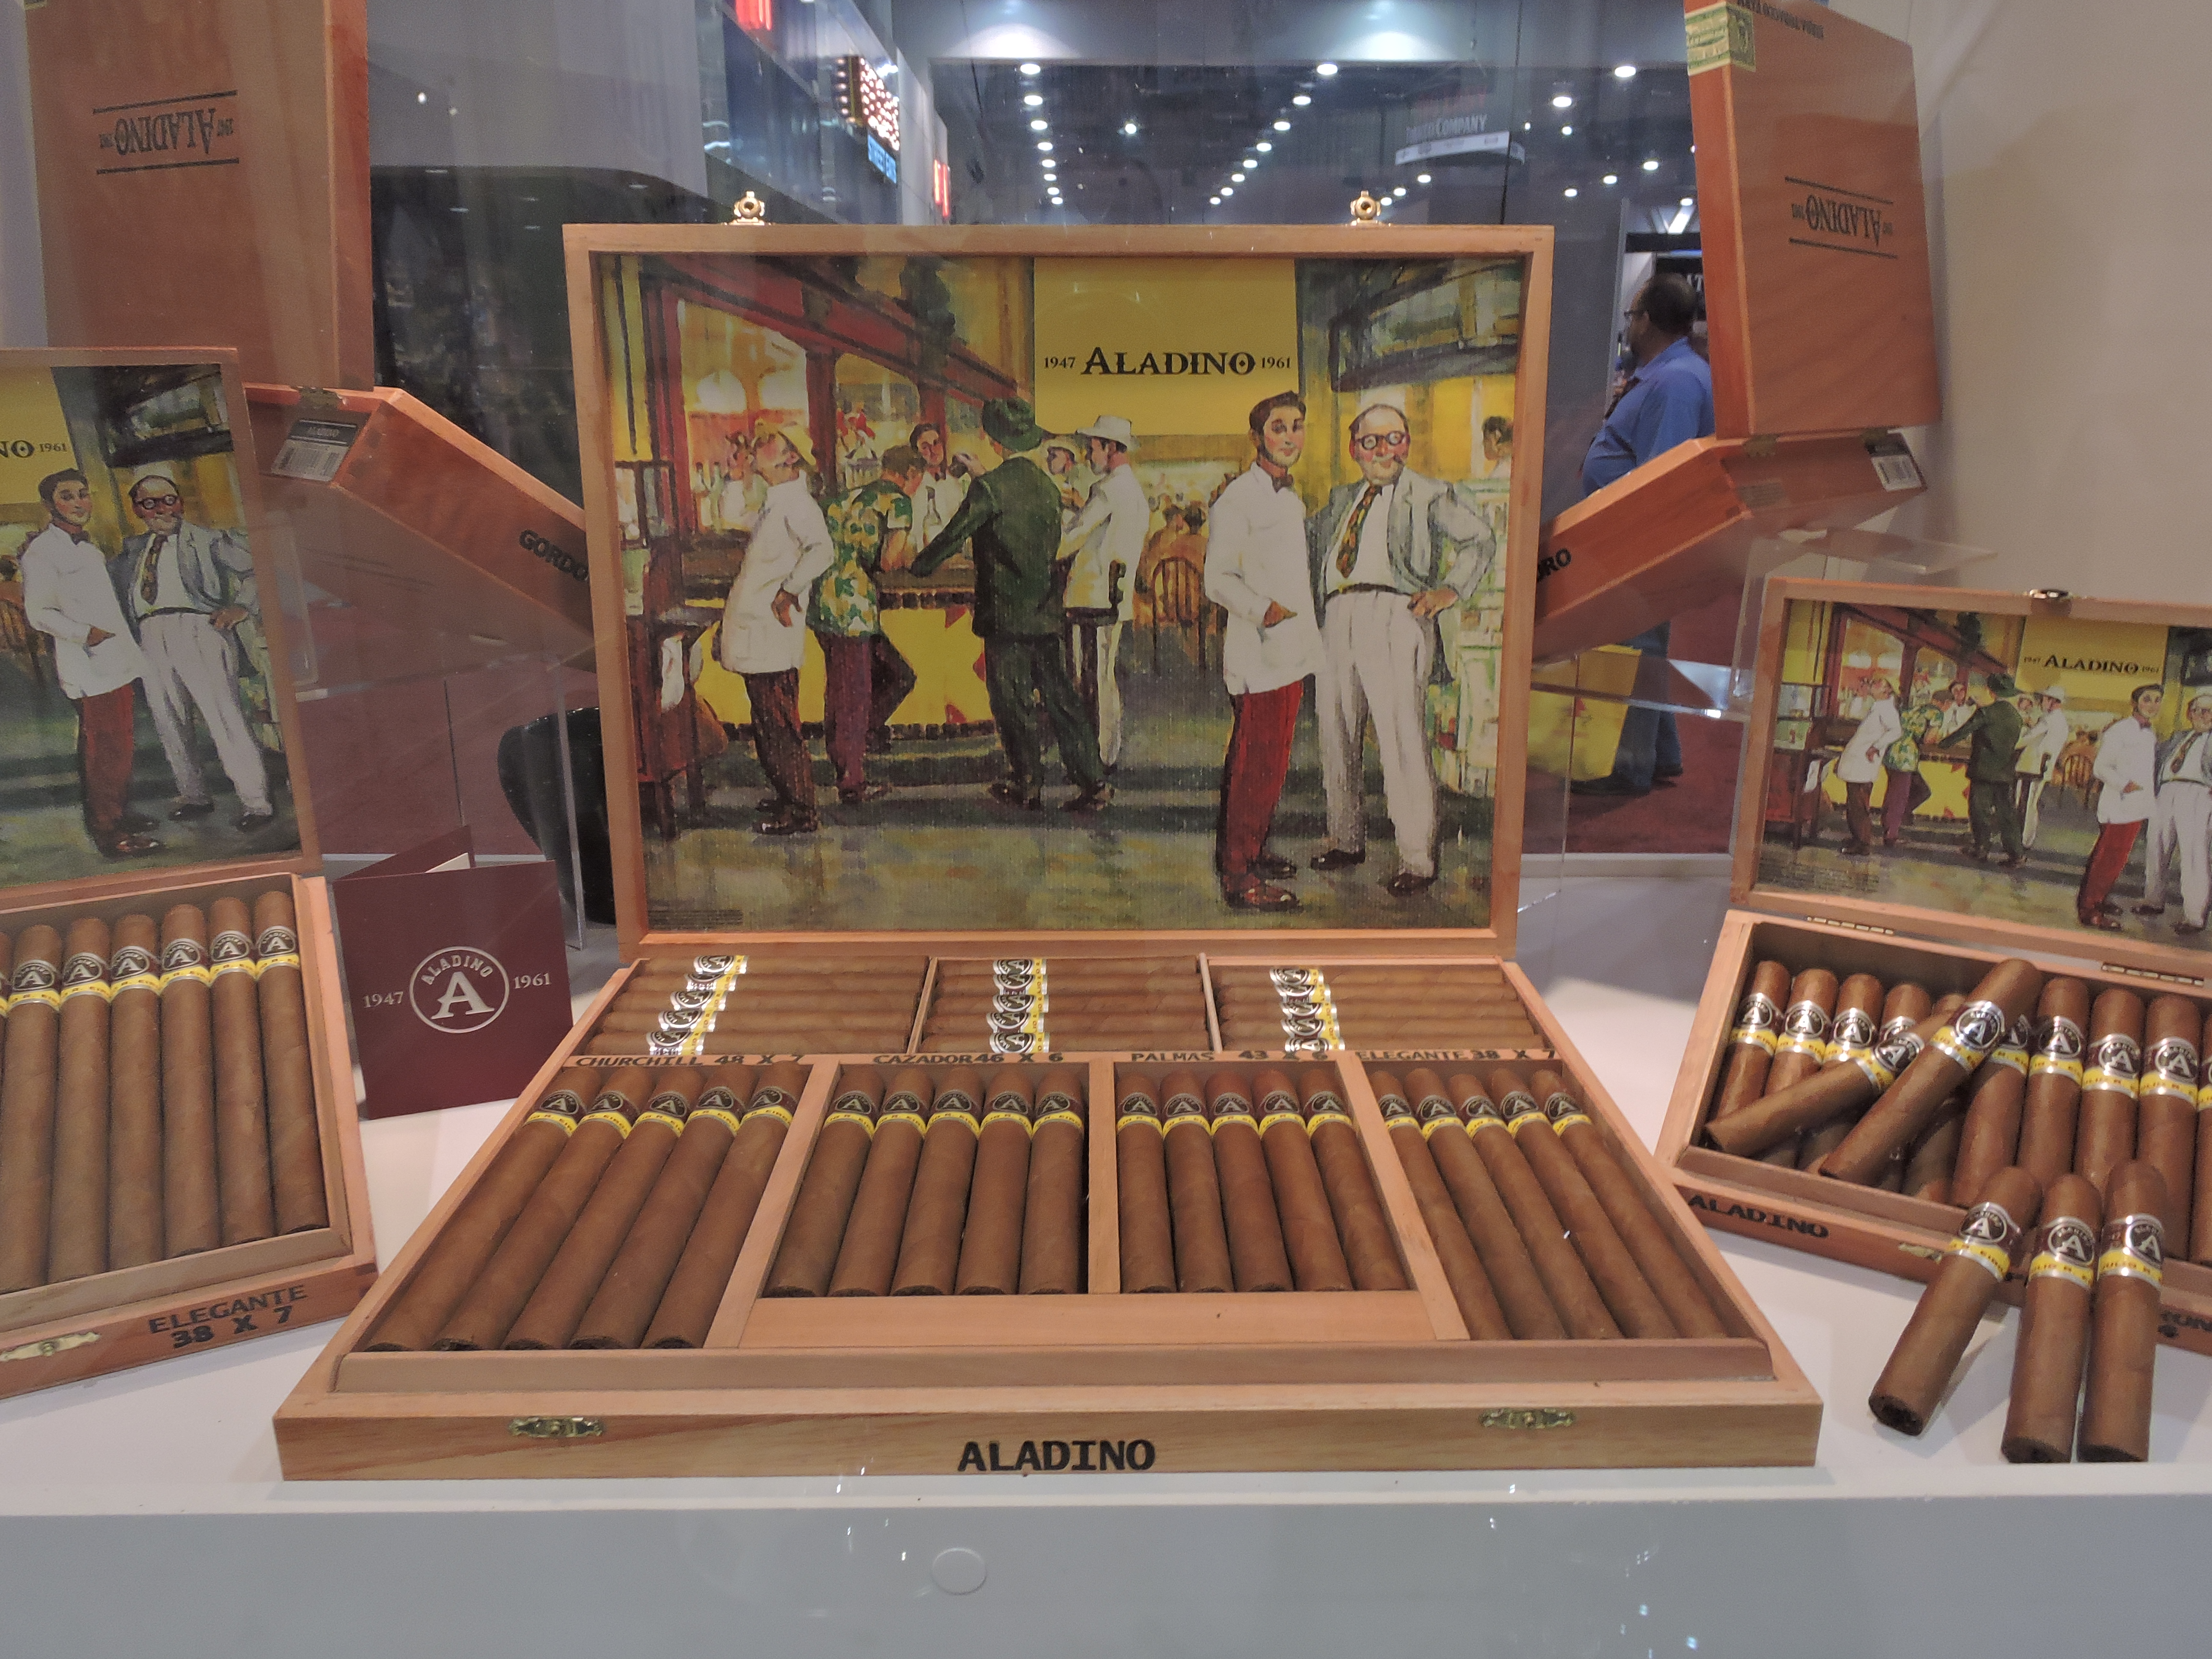 Feature Story: Spotlight on JRE Tobacco Co. at the 2017 IPCPR Trade Show